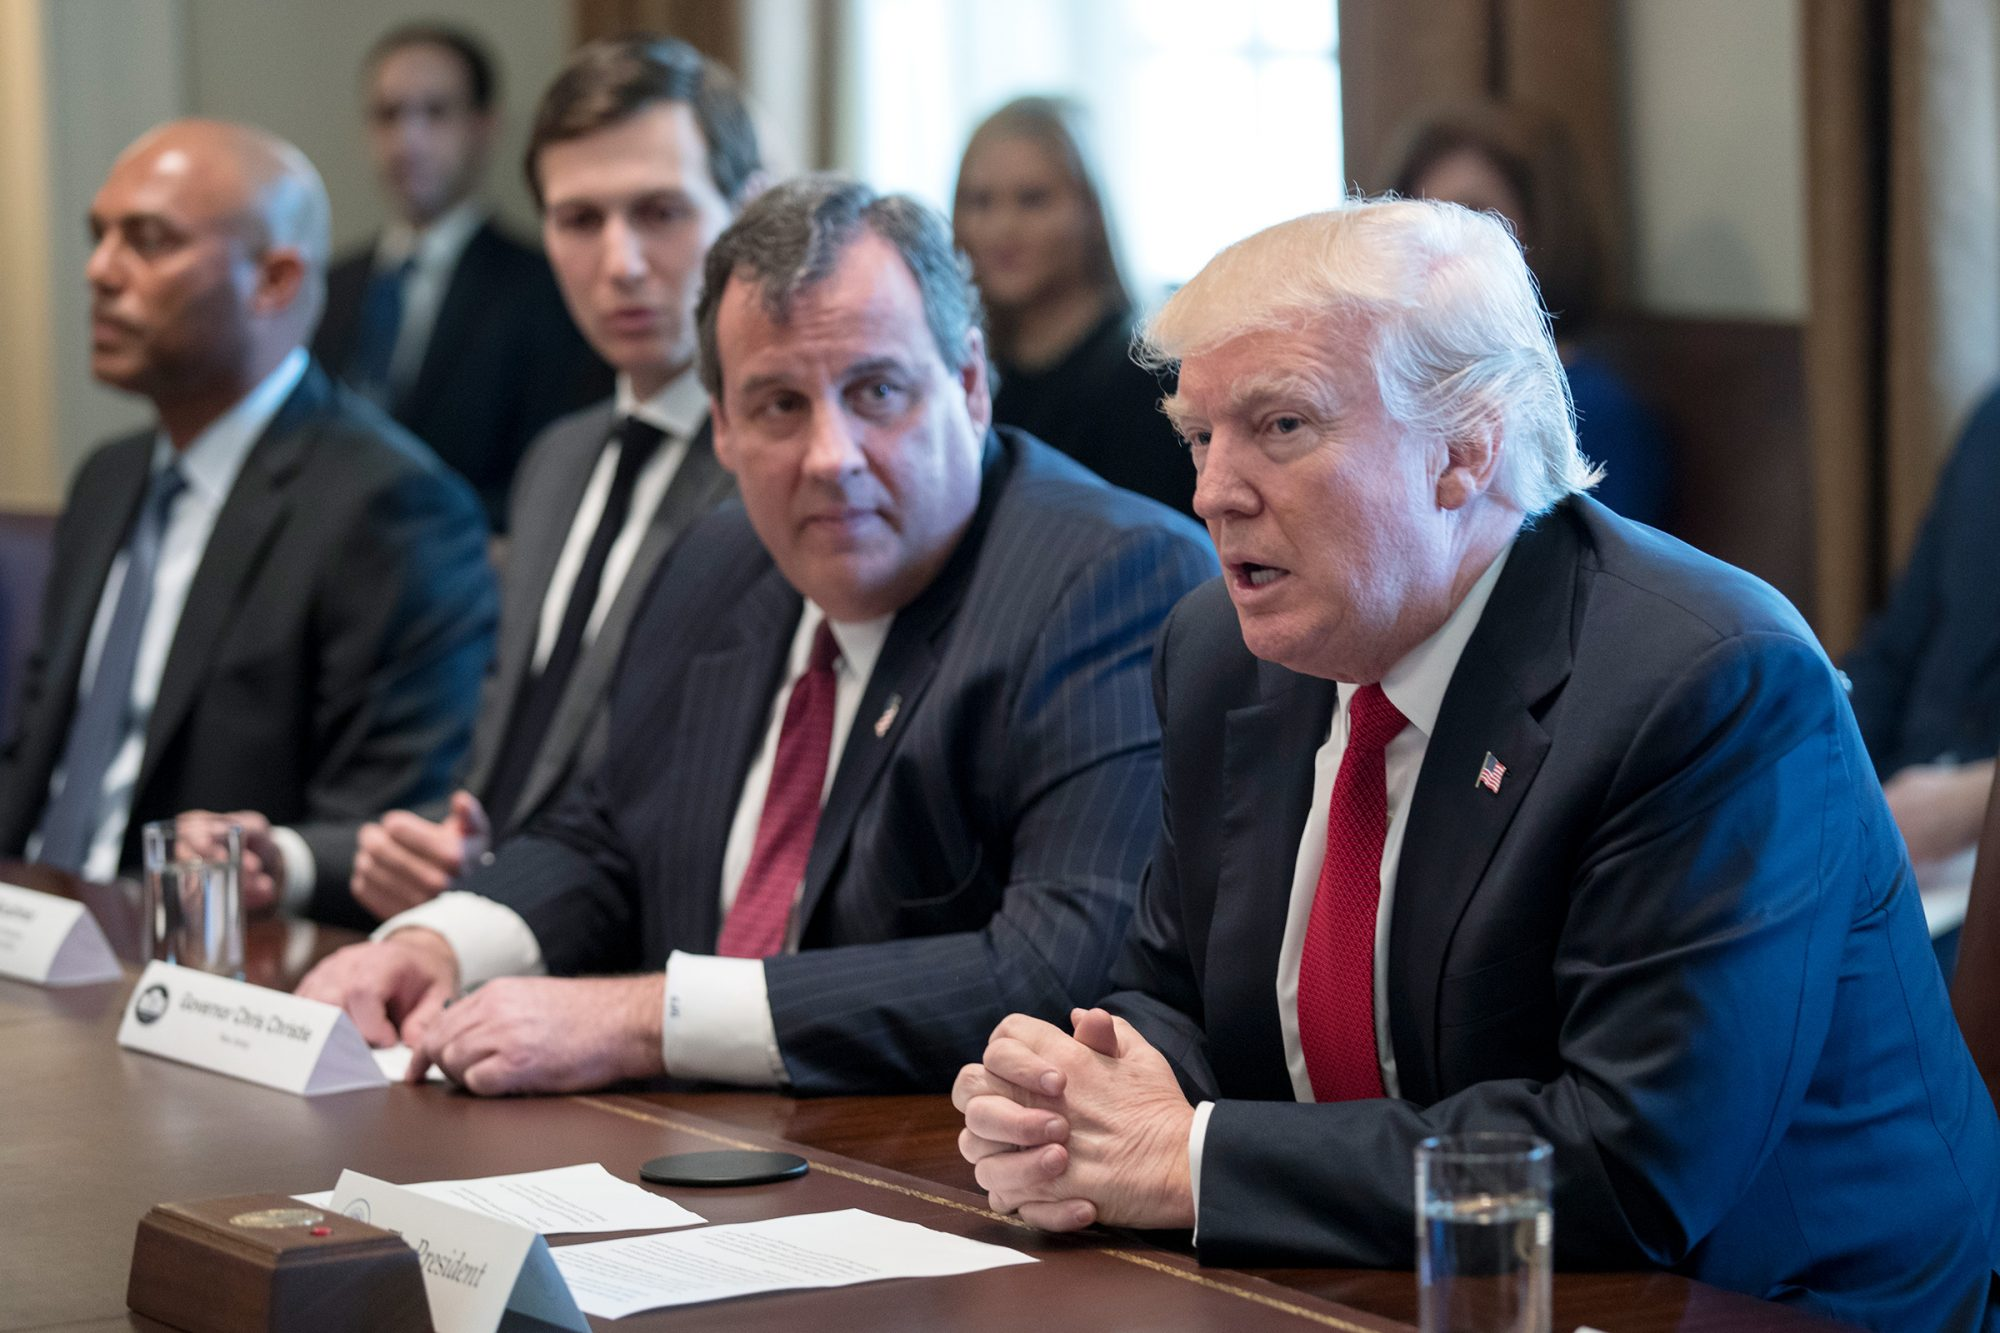 U.S. President Donald Trump (L) and New Jersey Gov. Chris Christie attend a panel discussion on an opioid and drug abuse in the Roosevelt Room of the White House March 29, 2017 in Washington